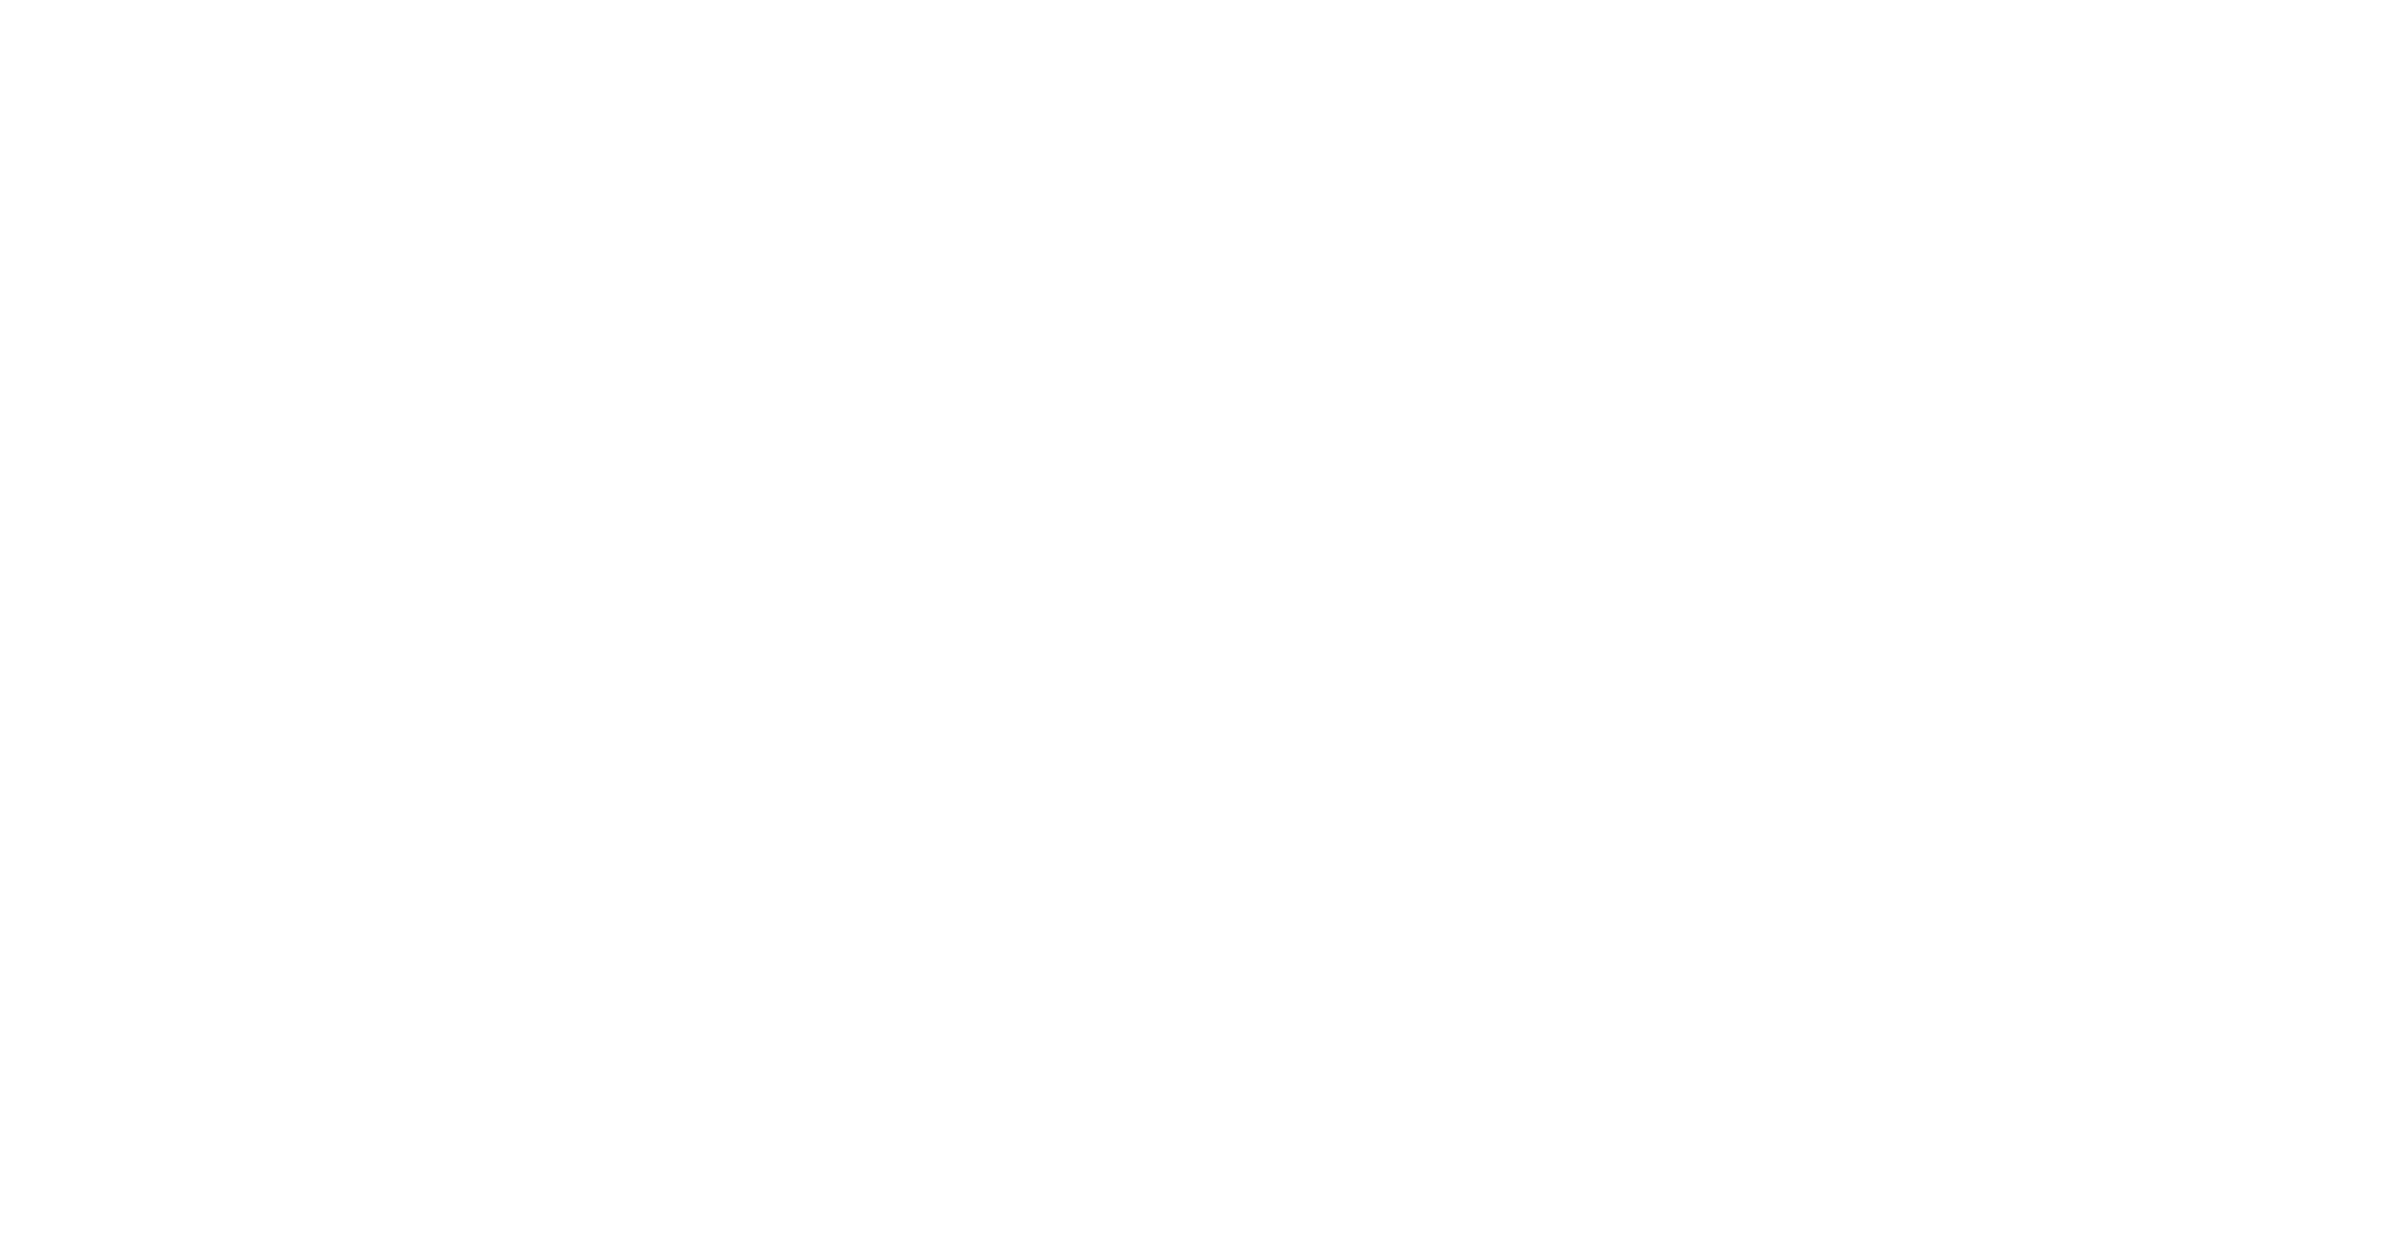 University of Borås